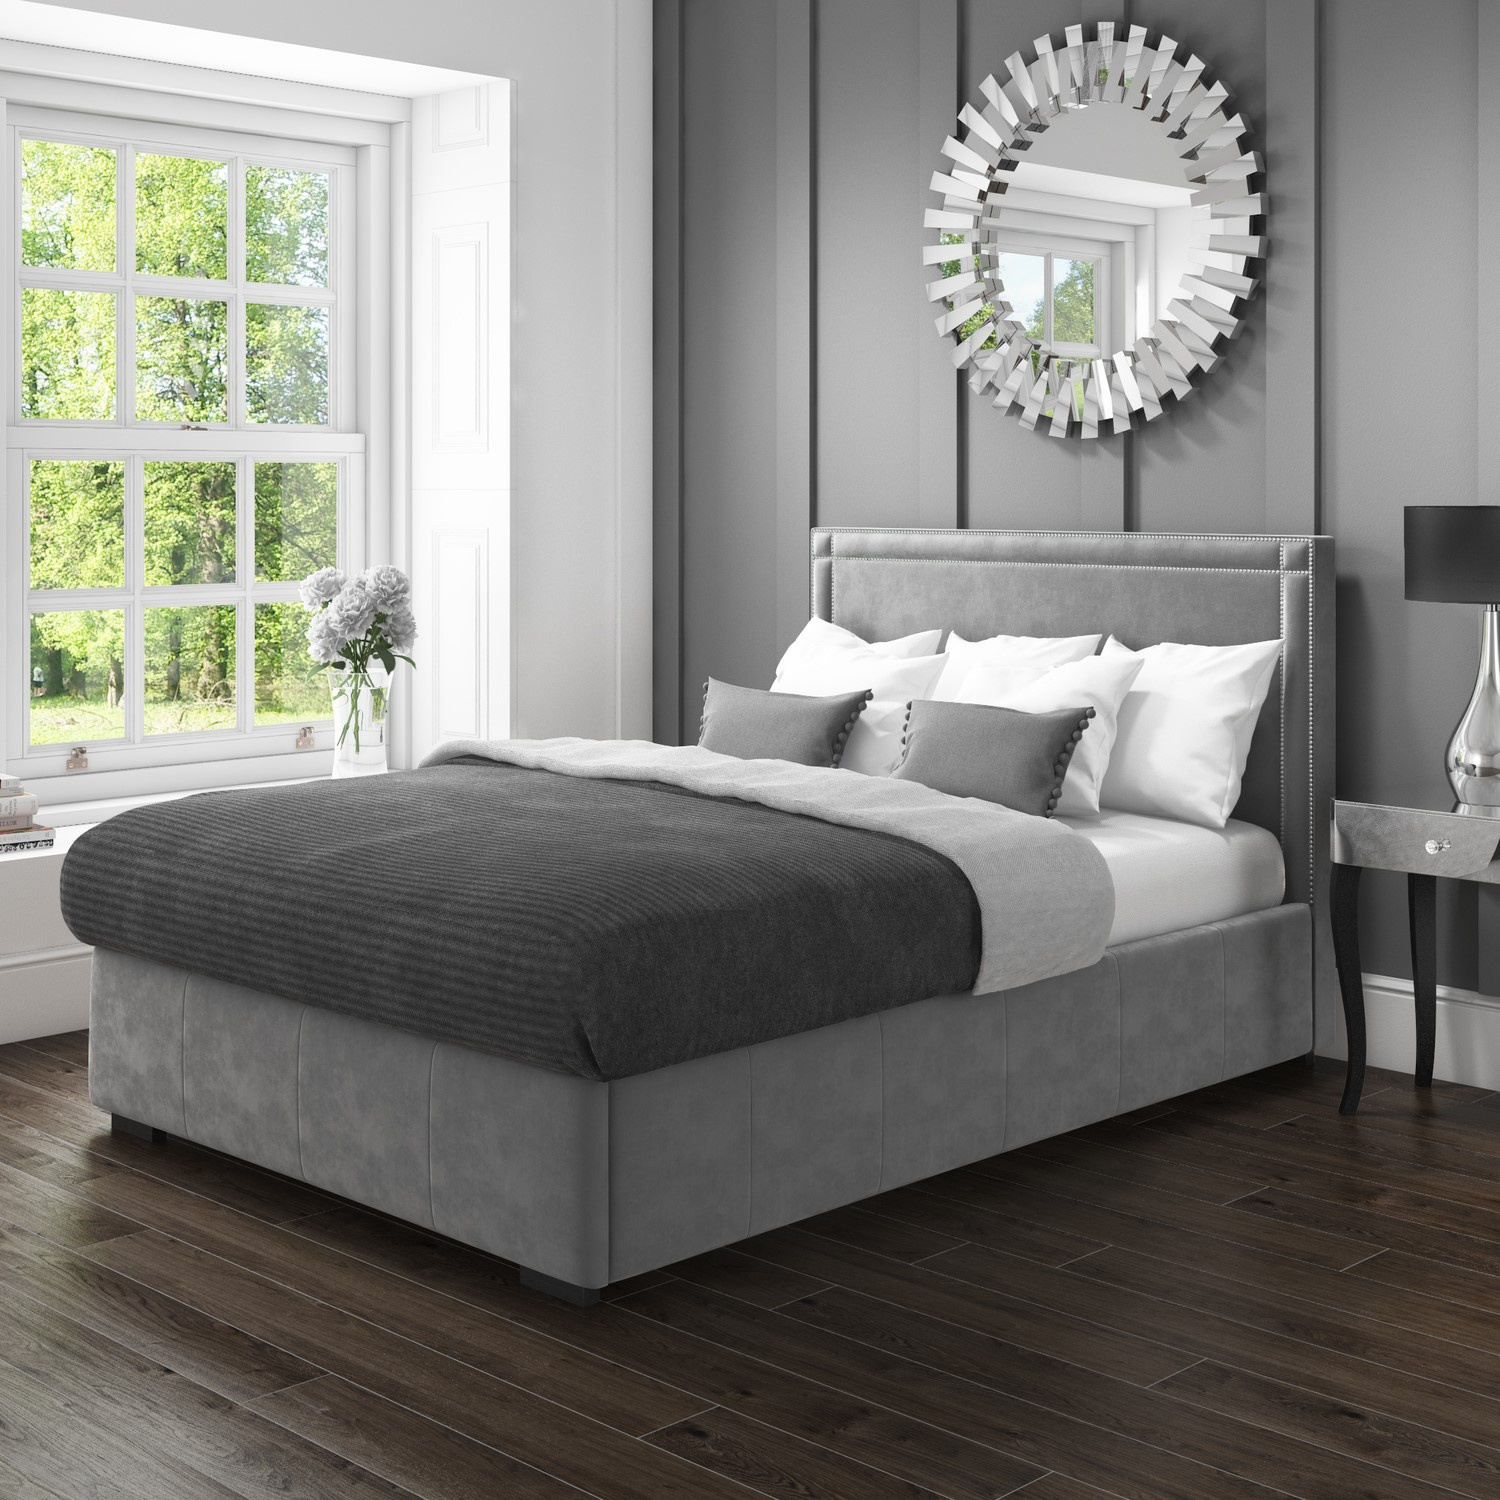 Fabulous Details About Modern Safina King Size Ottoman Bed With Double Stud Detailing In Grey Velvet Gmtry Best Dining Table And Chair Ideas Images Gmtryco